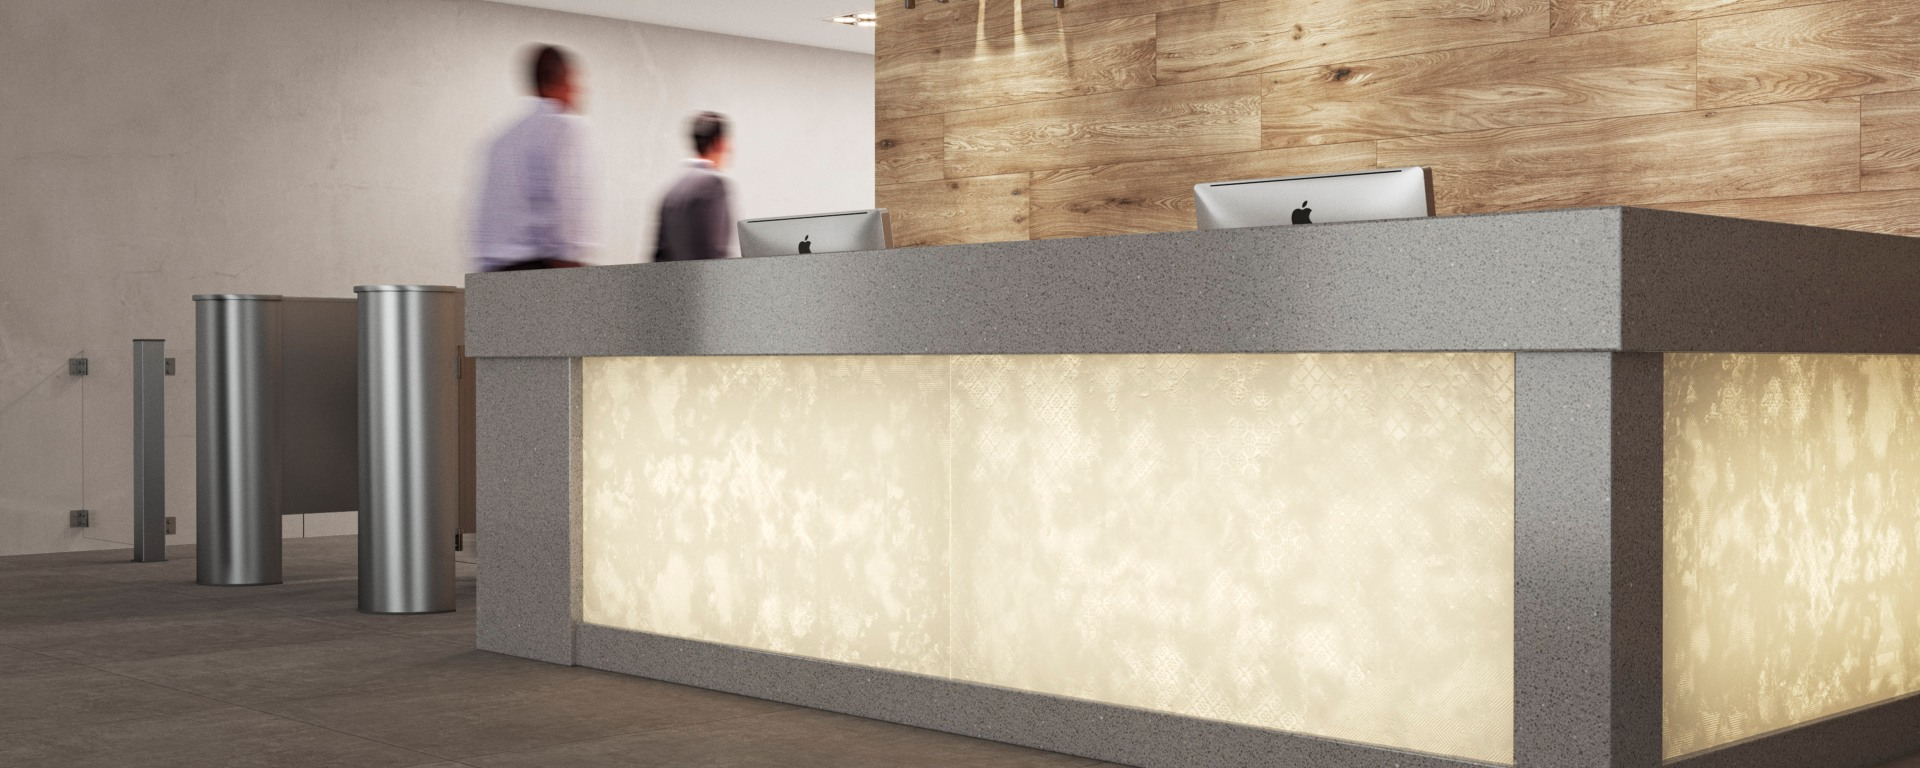 Transcluent Backstage tile, 600 by 1,200mm, by Ceramica Portinari